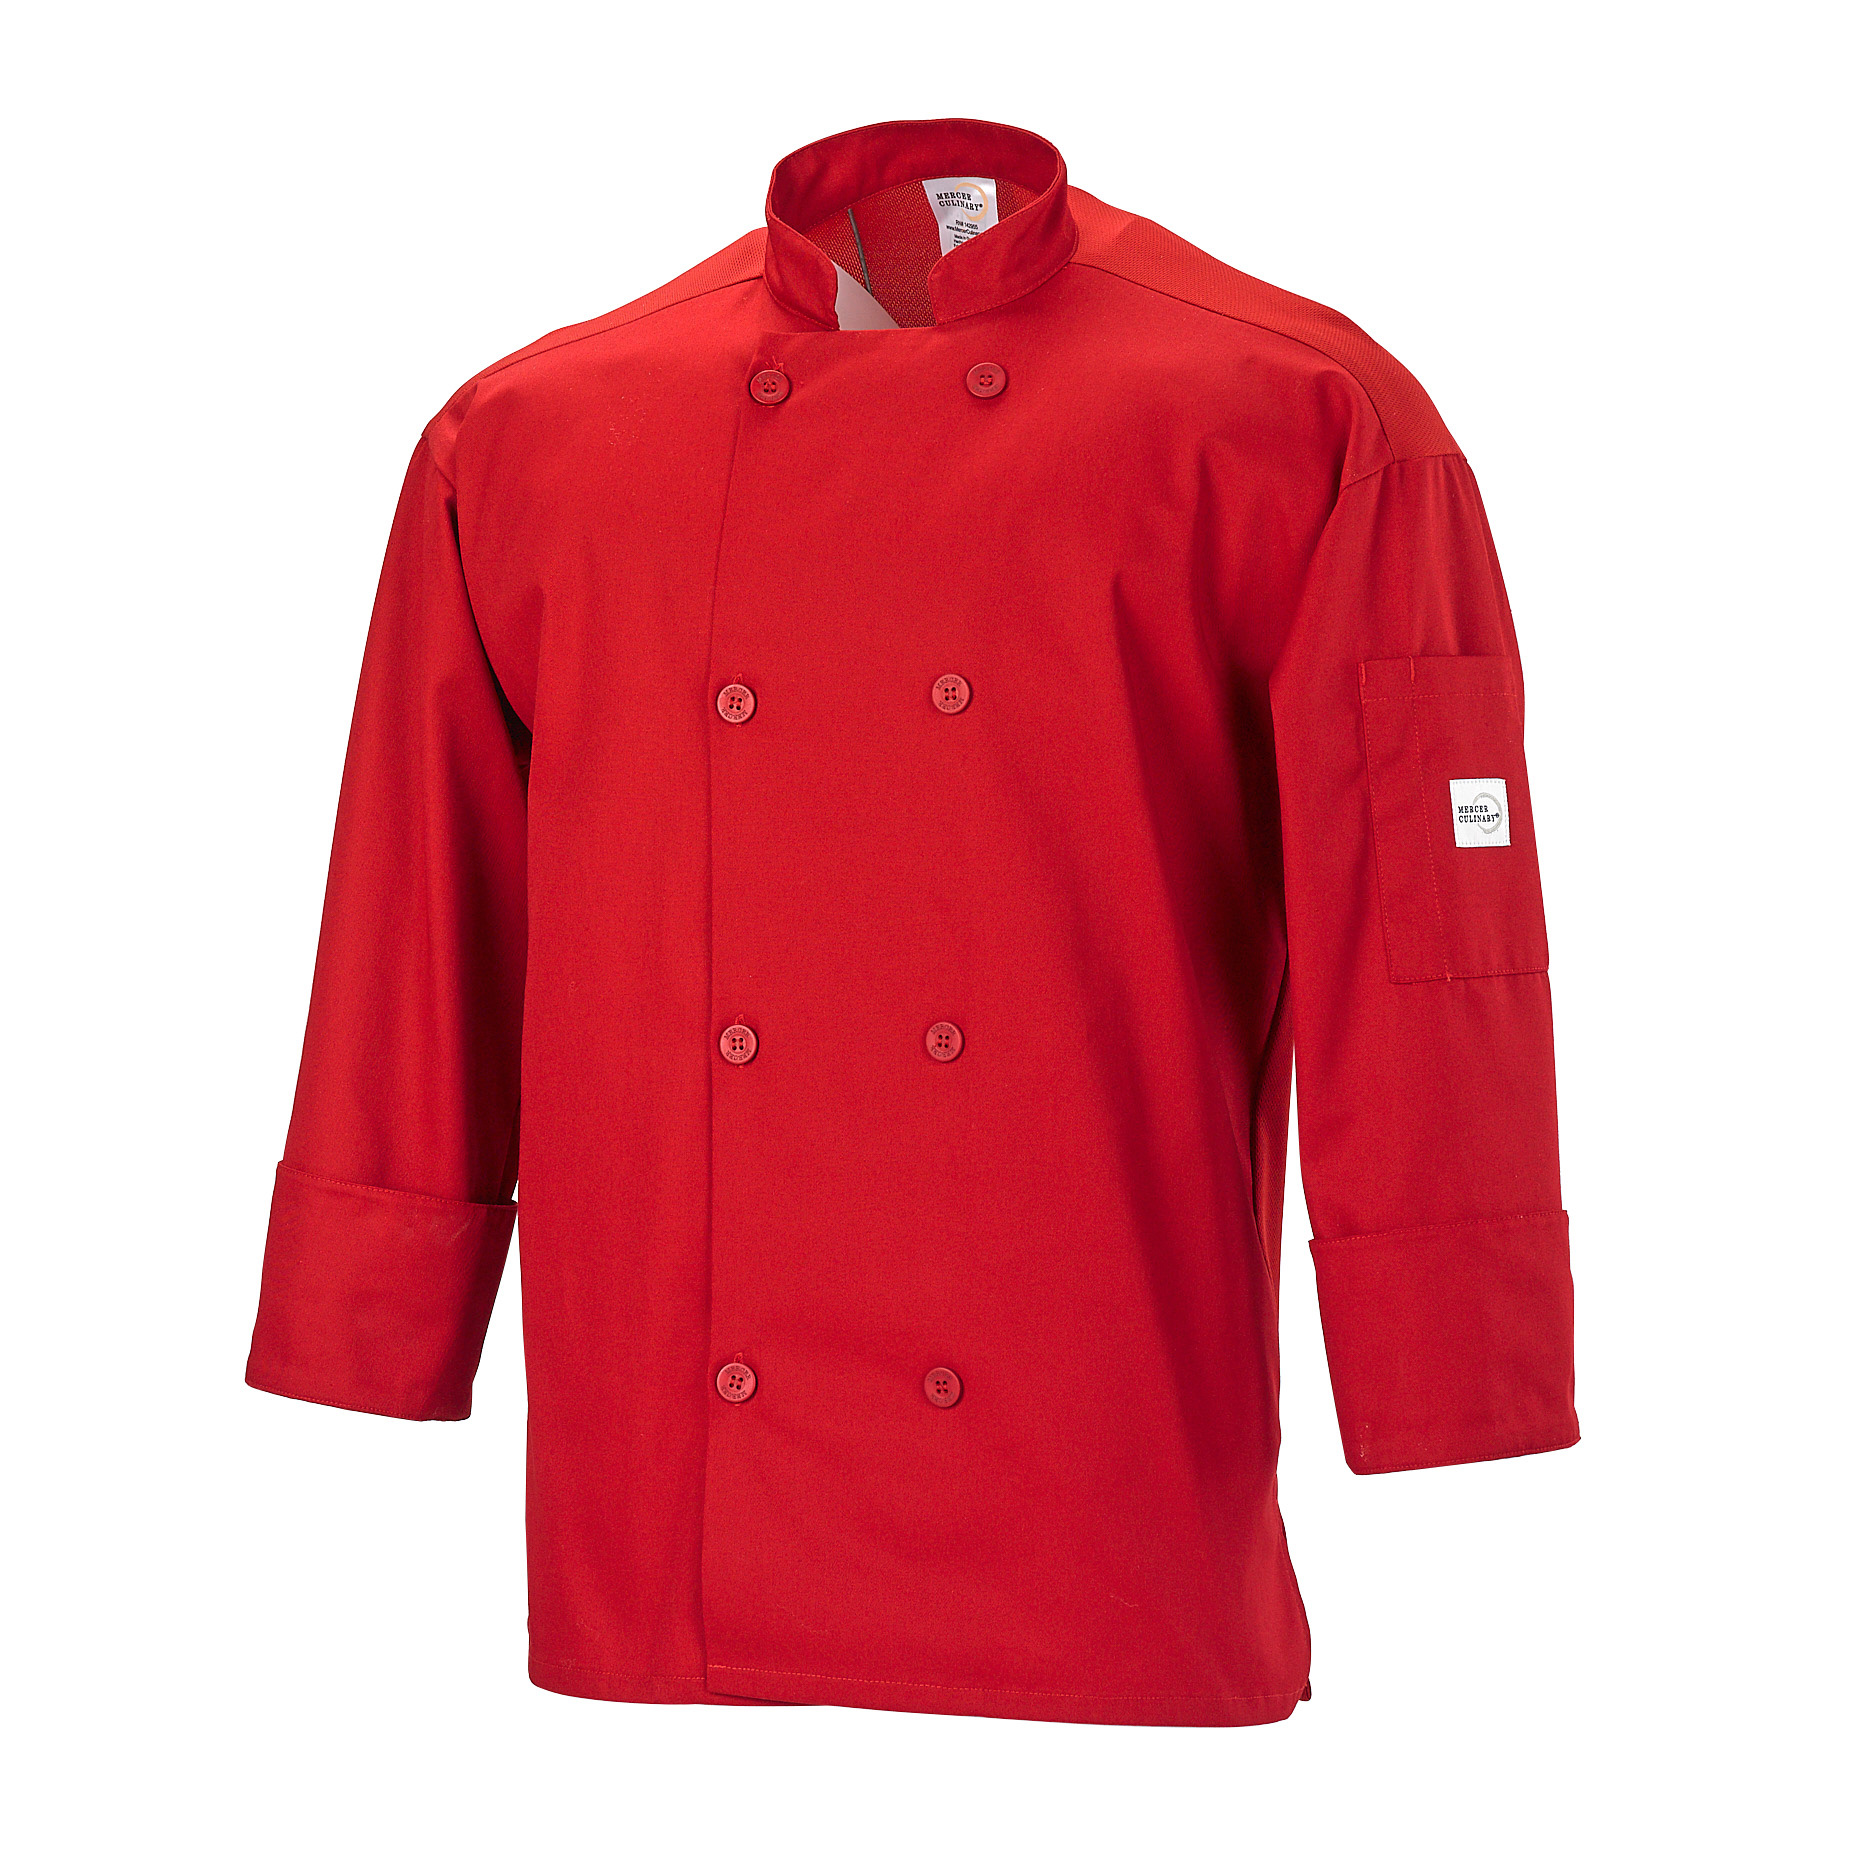 Mercer Culinary M60017RD2X chef's coat